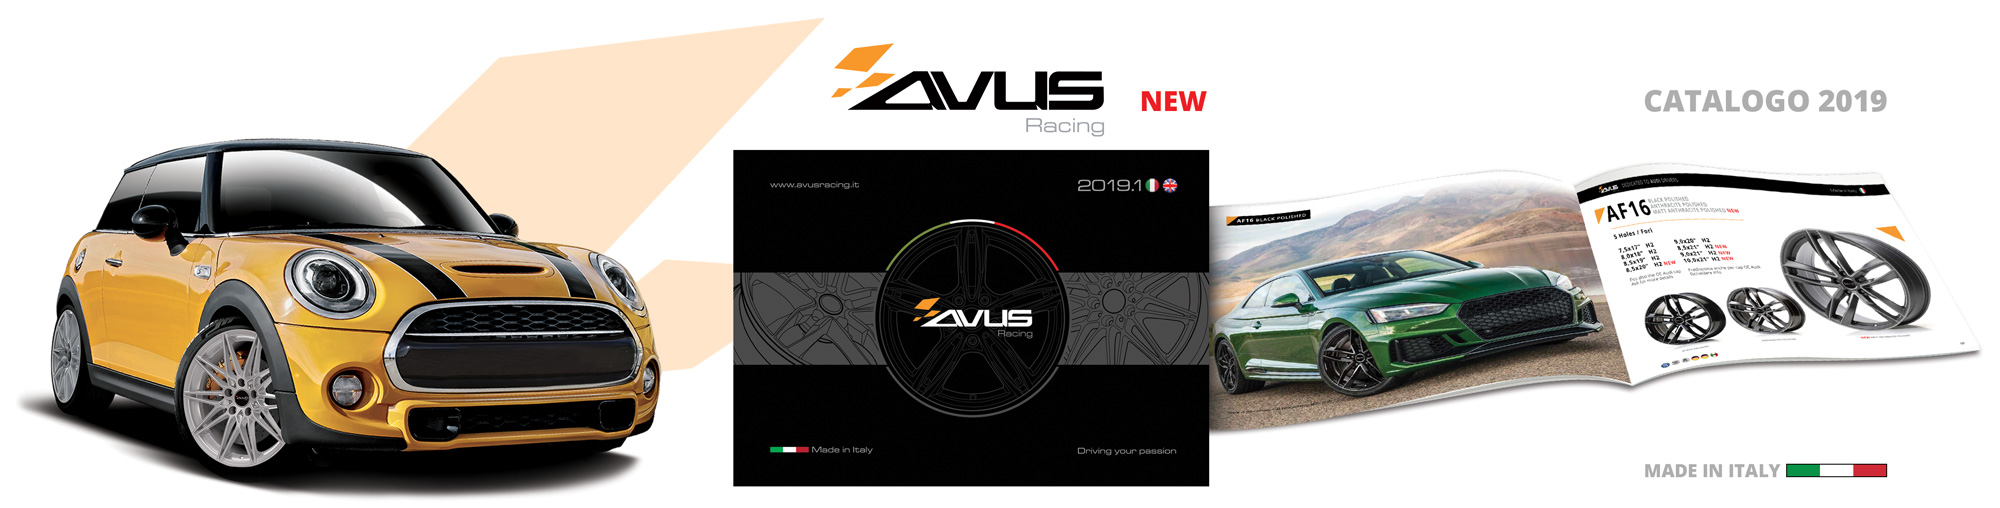 Avus Racing Catalogo 2019